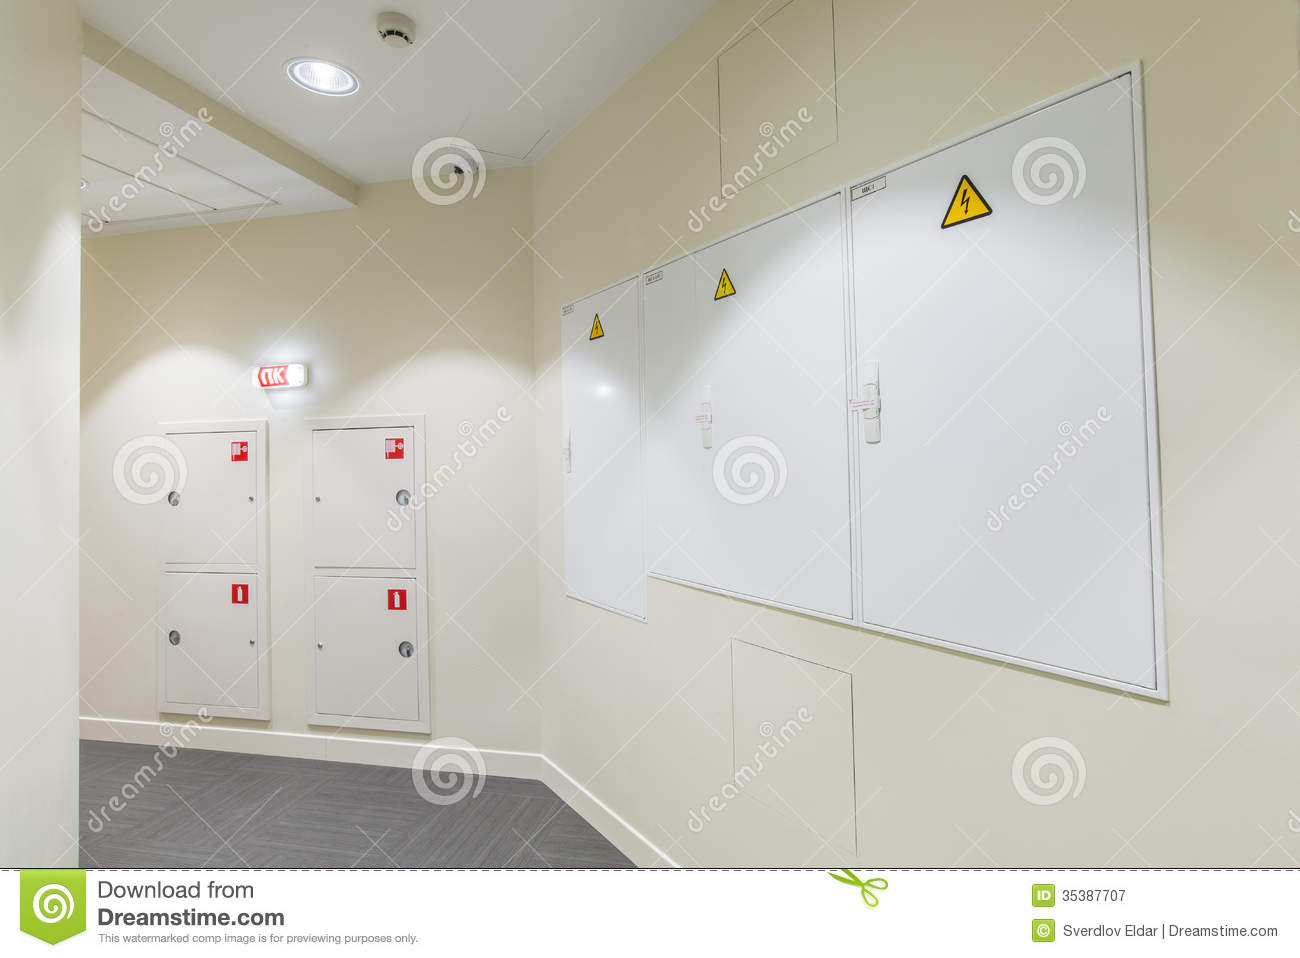 hight resolution of office interior corridor with light colored walls and fire box fuse box